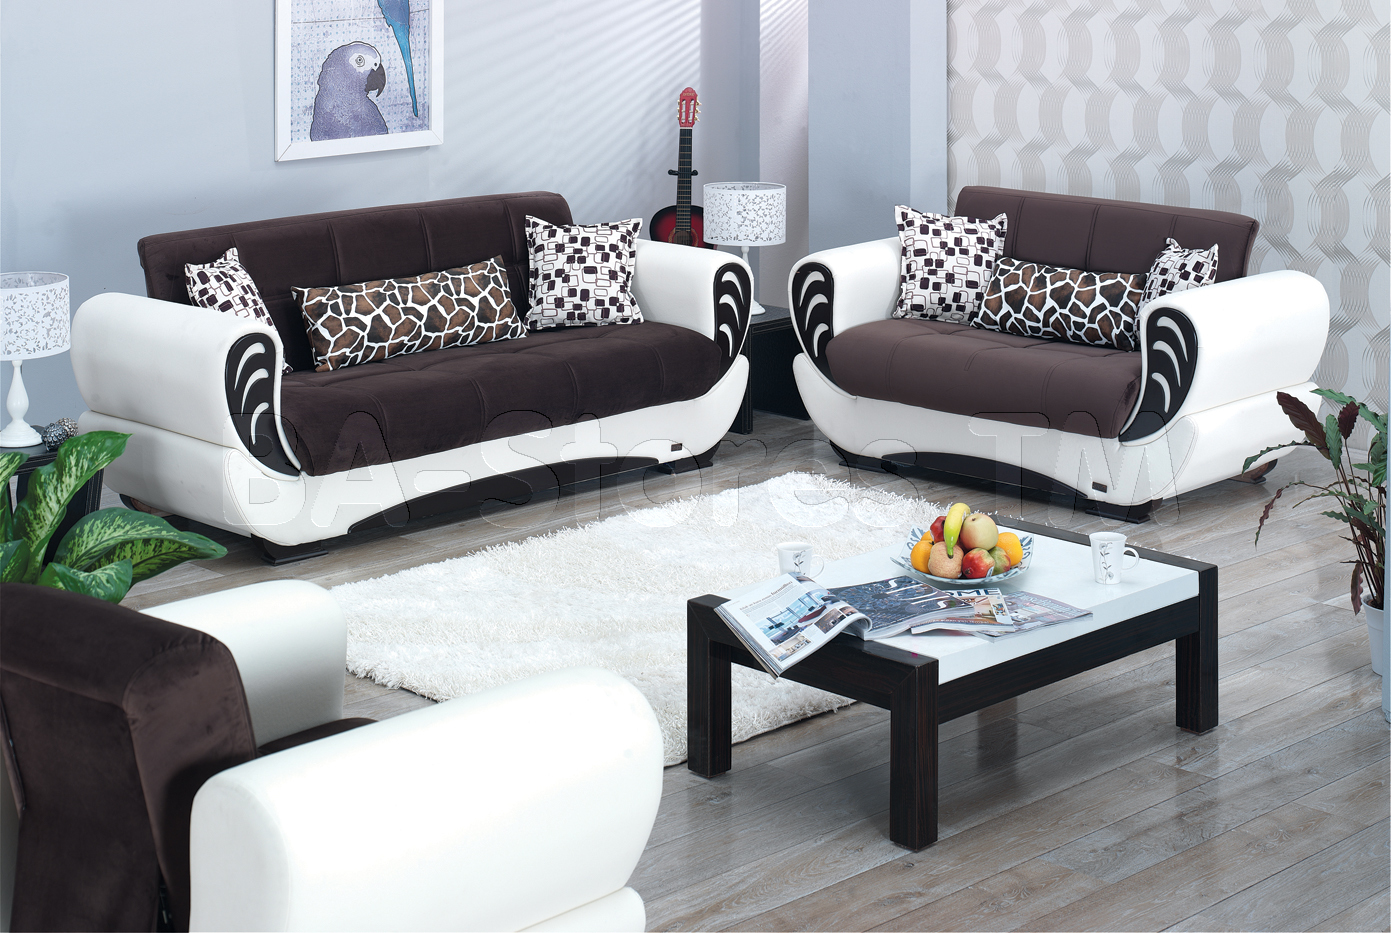 Wooden Sofa Set Designs For Small Living Room With Price